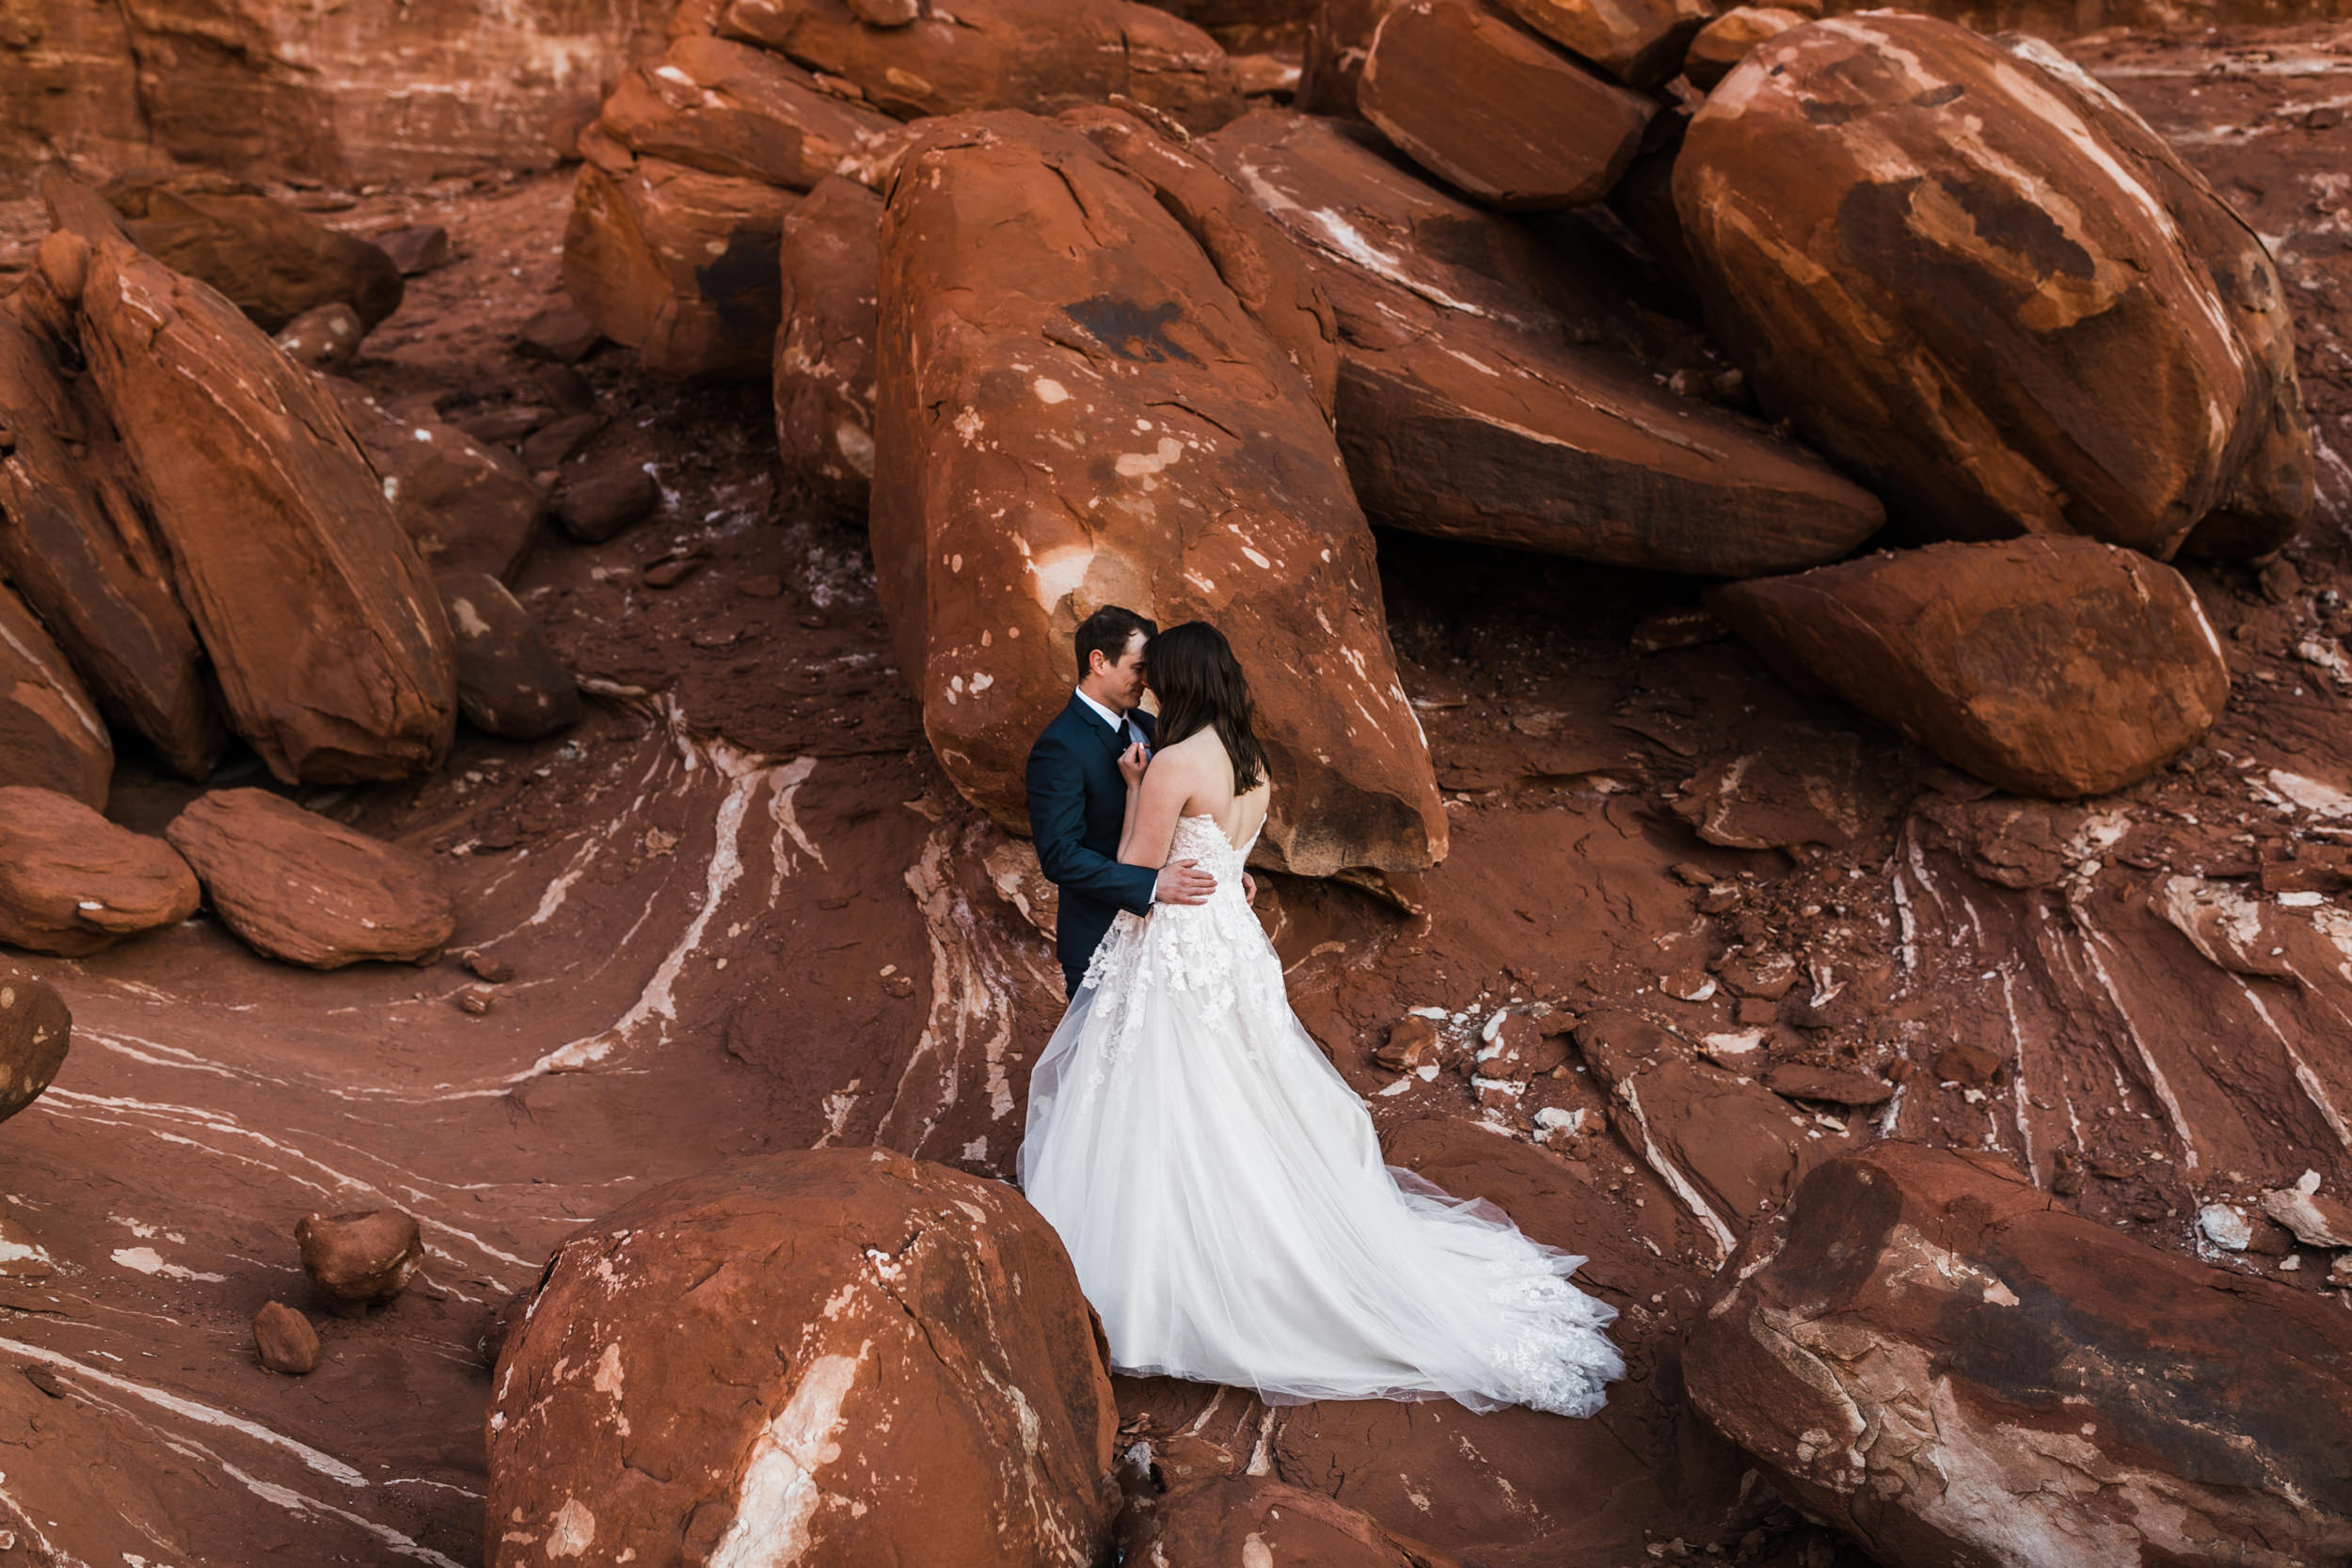 Her wedding dress was so beautiful against these red and white rocks.